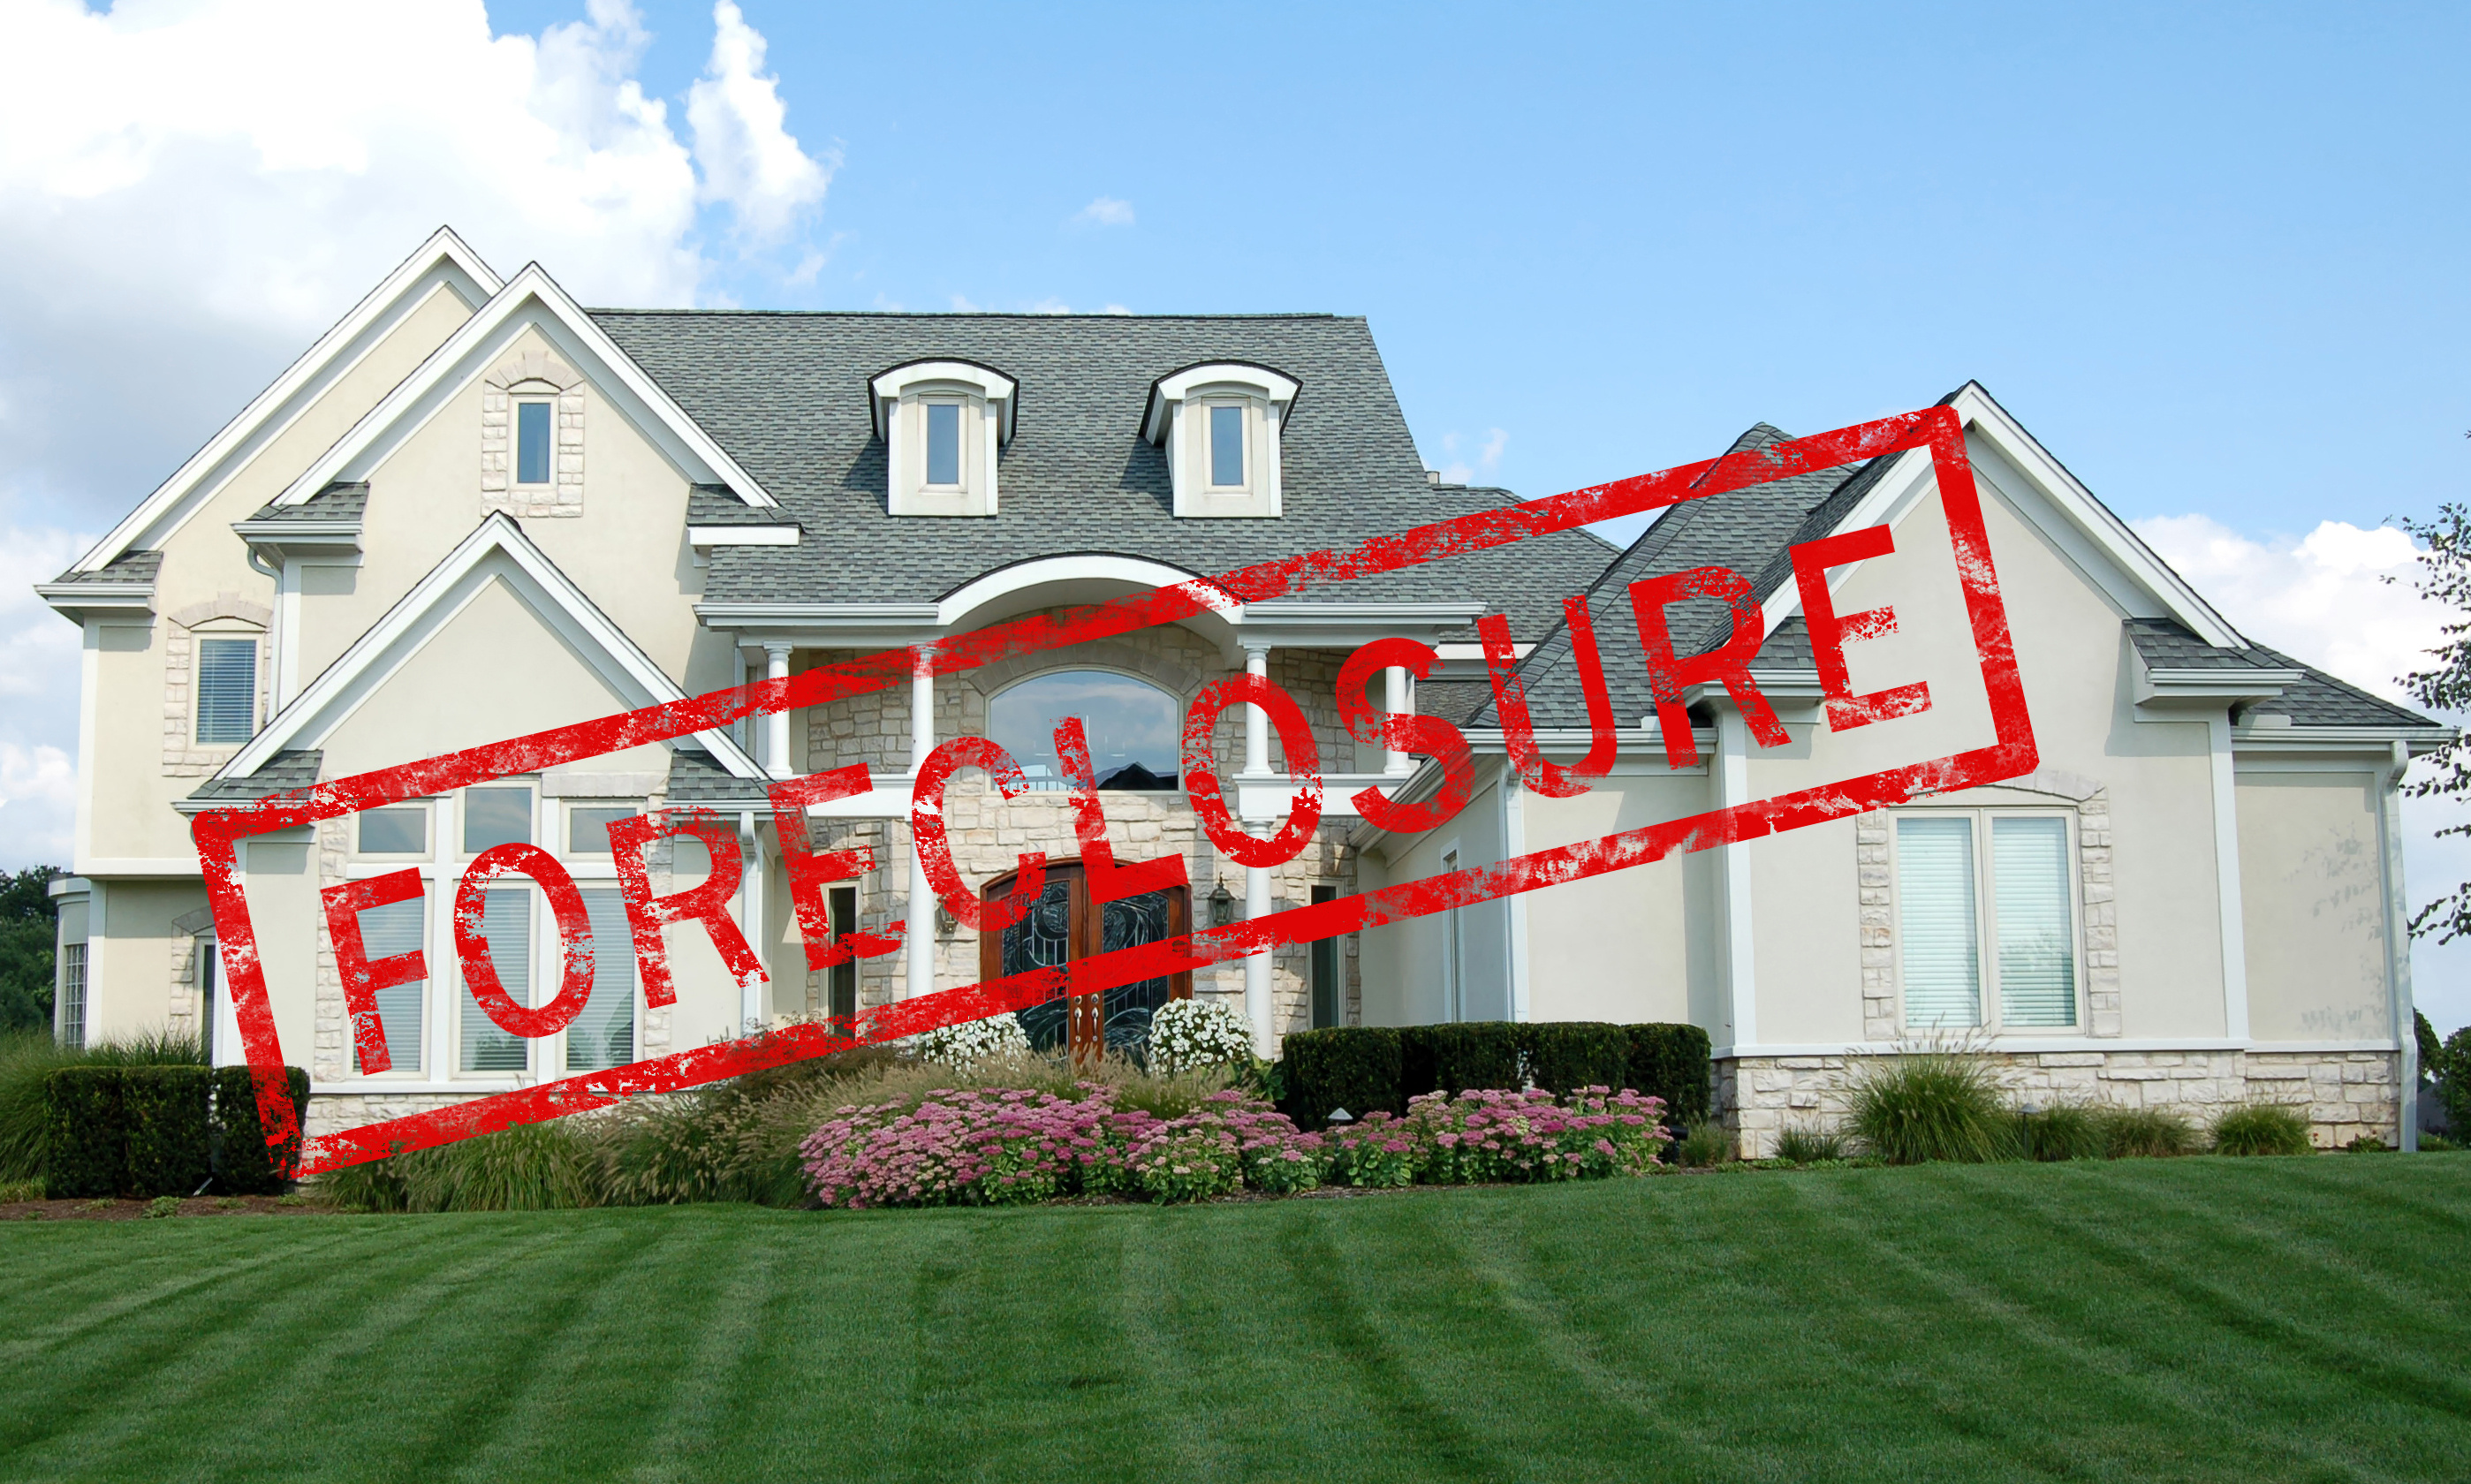 Call WalshStreet  Appraisals to discuss valuations on Los Angeles foreclosures